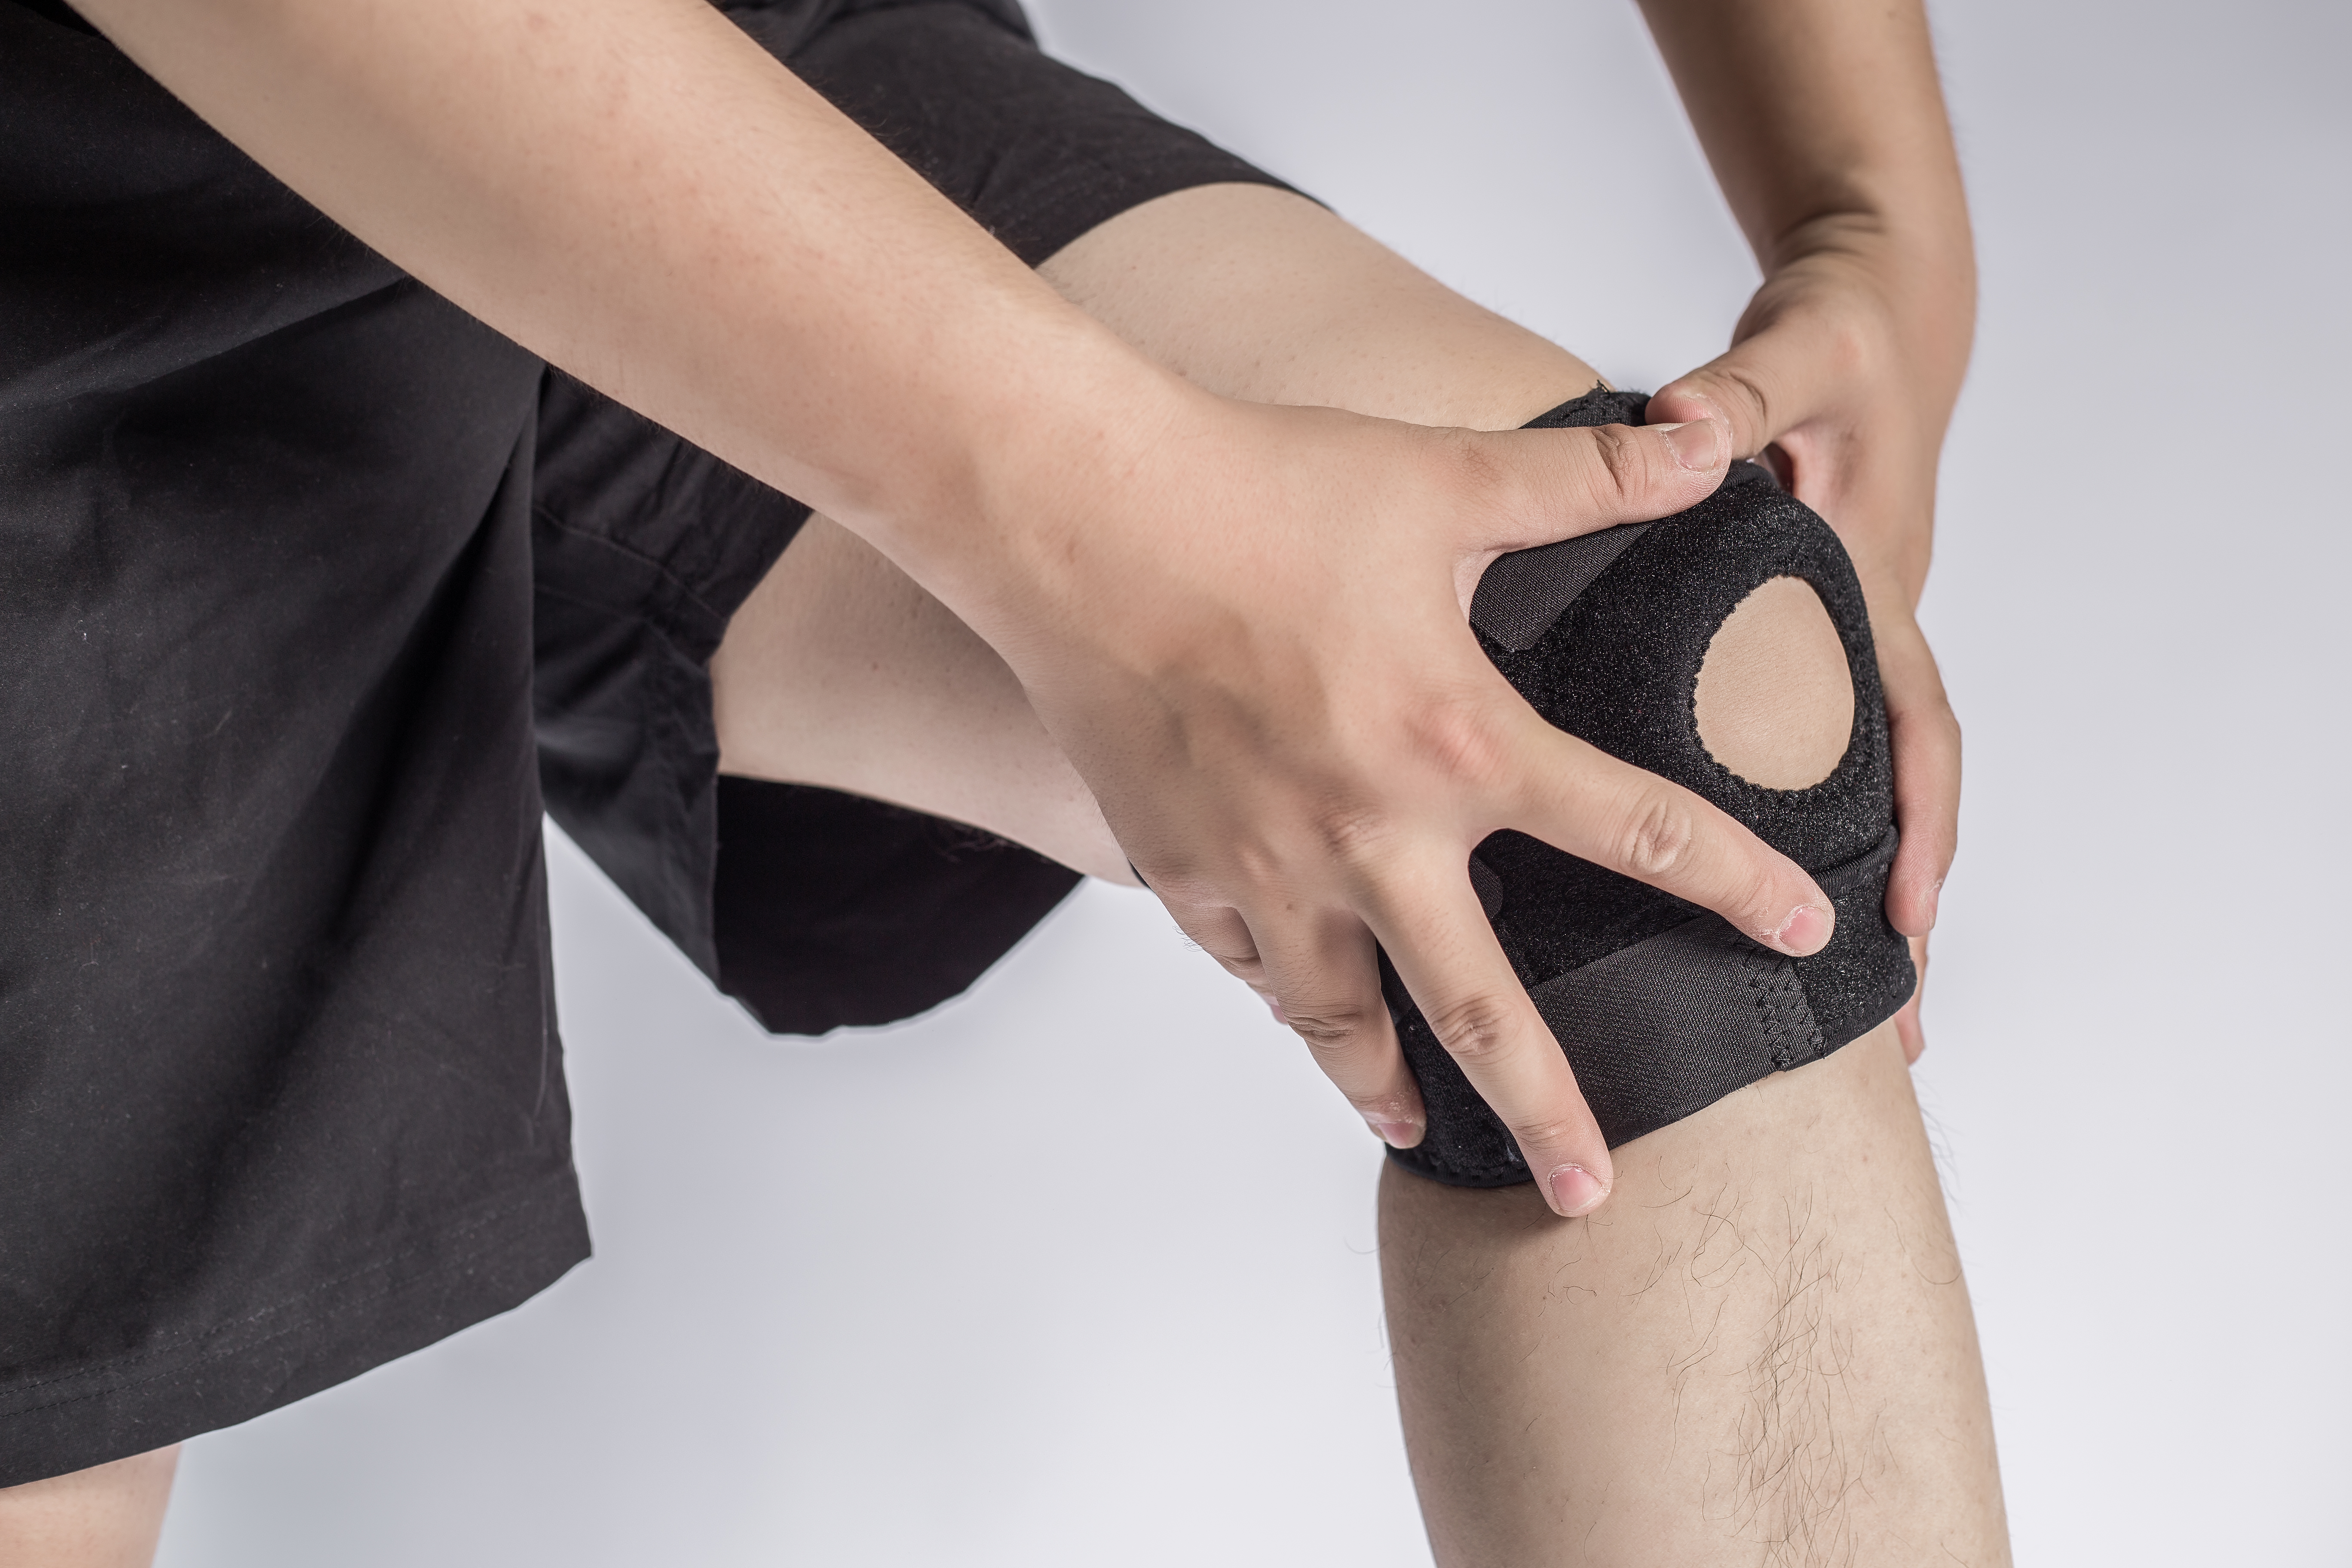 How to Use Whirlpool Therapy to Treat Sports Injuries ...